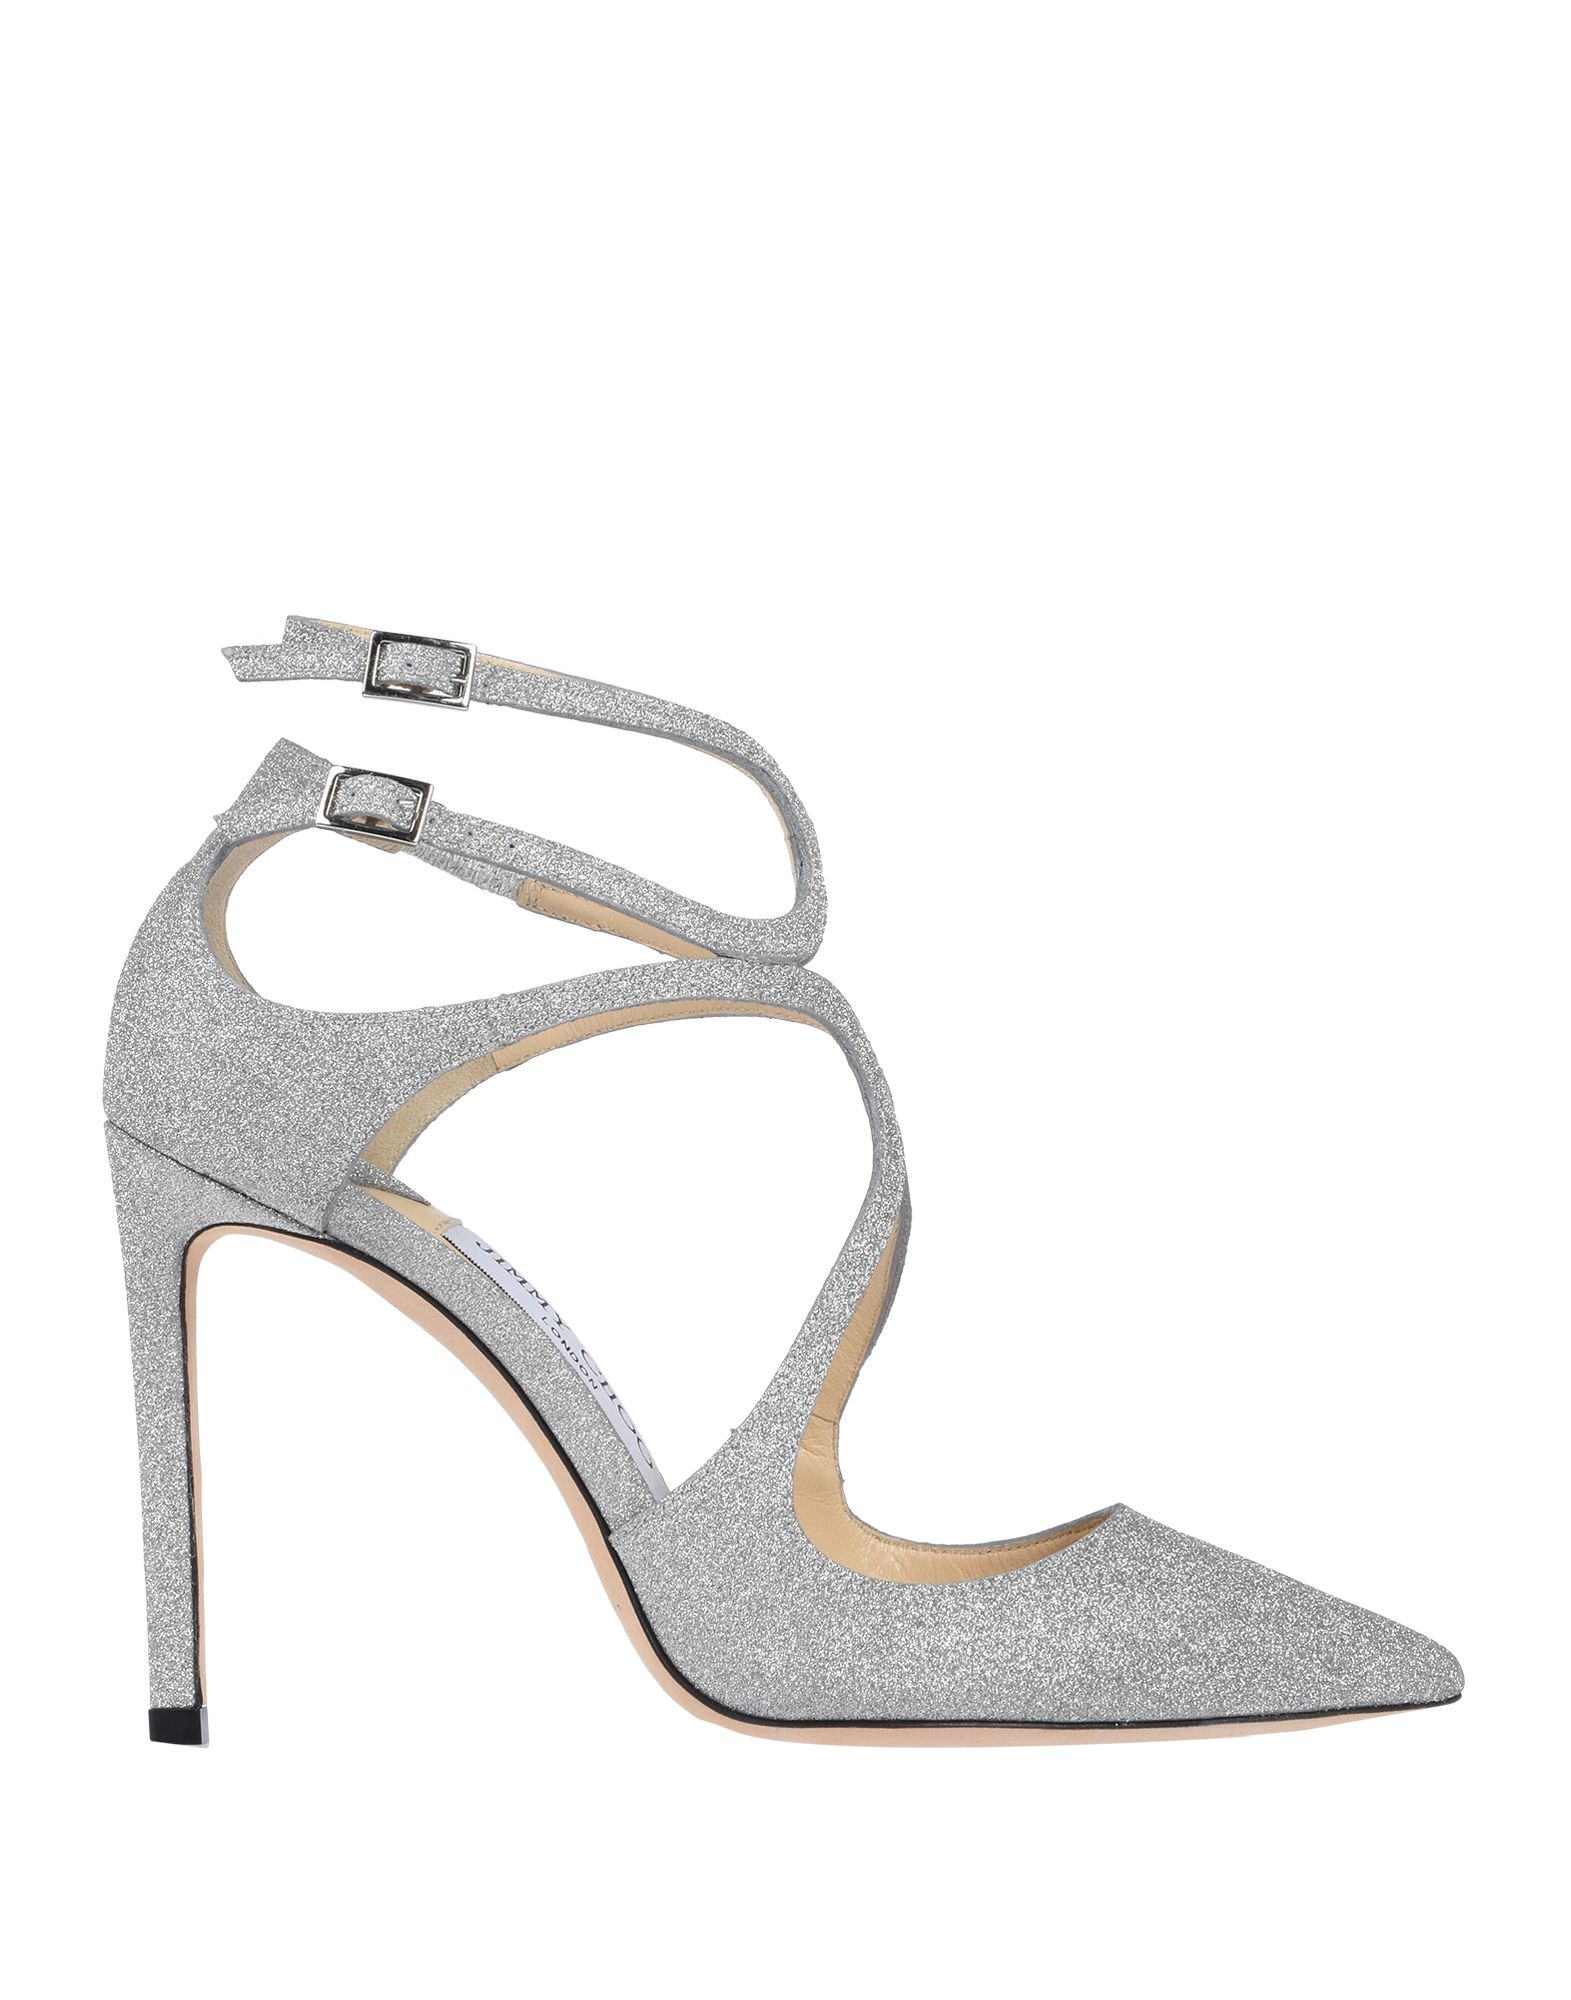 JIMMY CHOO Туфли jimmy choo туфли romy page 6